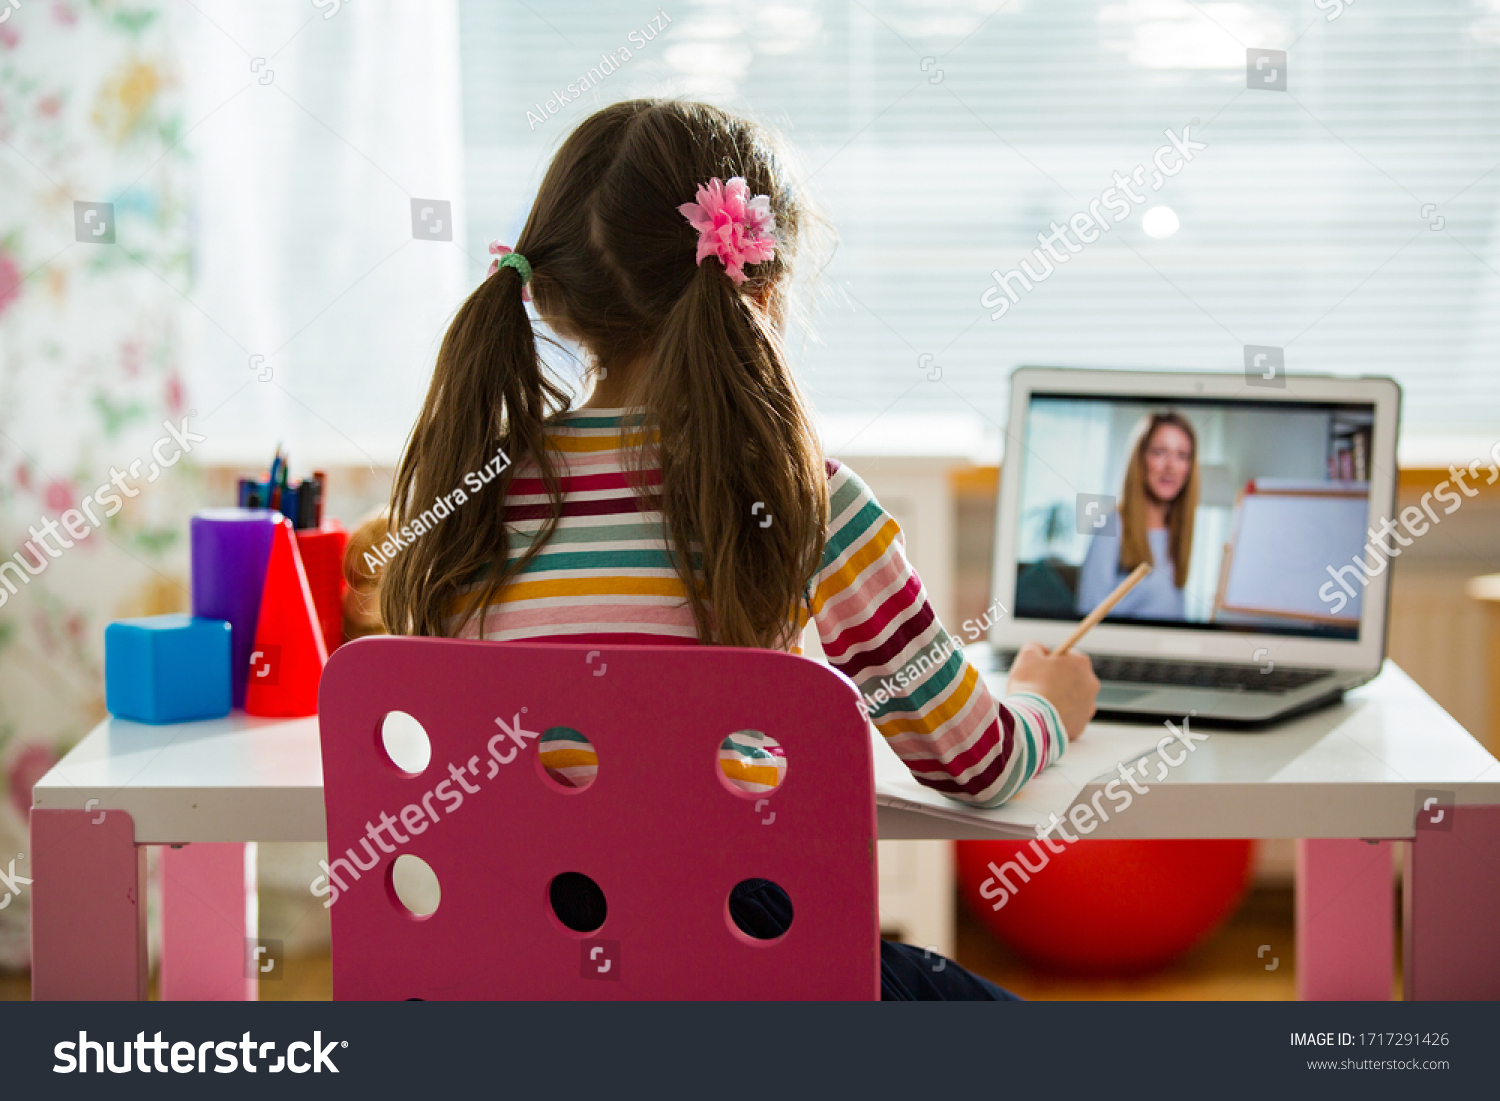 Young female distance teacher having video conference call with pupil using webcam. Online education and e-learning concept. Home quarantine distance learning and working from home. #1717291426